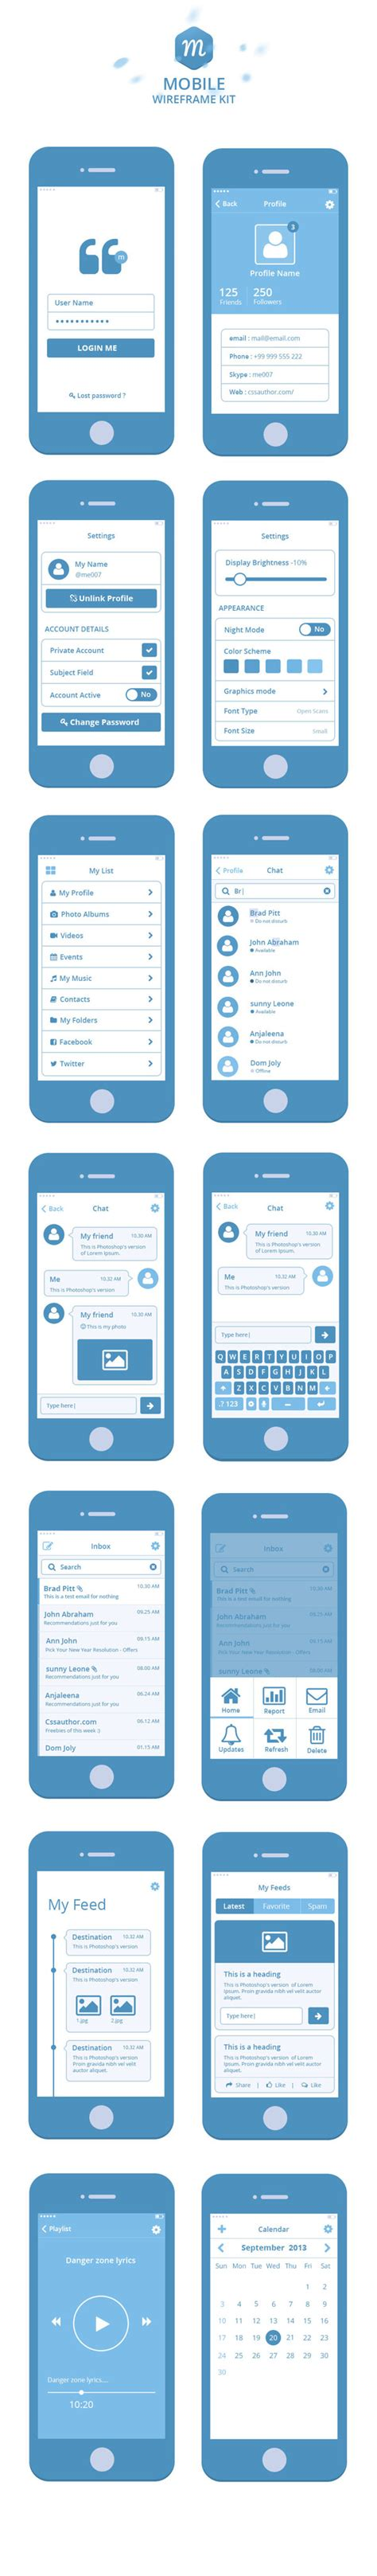 14 Free Web And Mobile Wireframe Templates For Developers Templates Perfect Mobile Wireframe Template